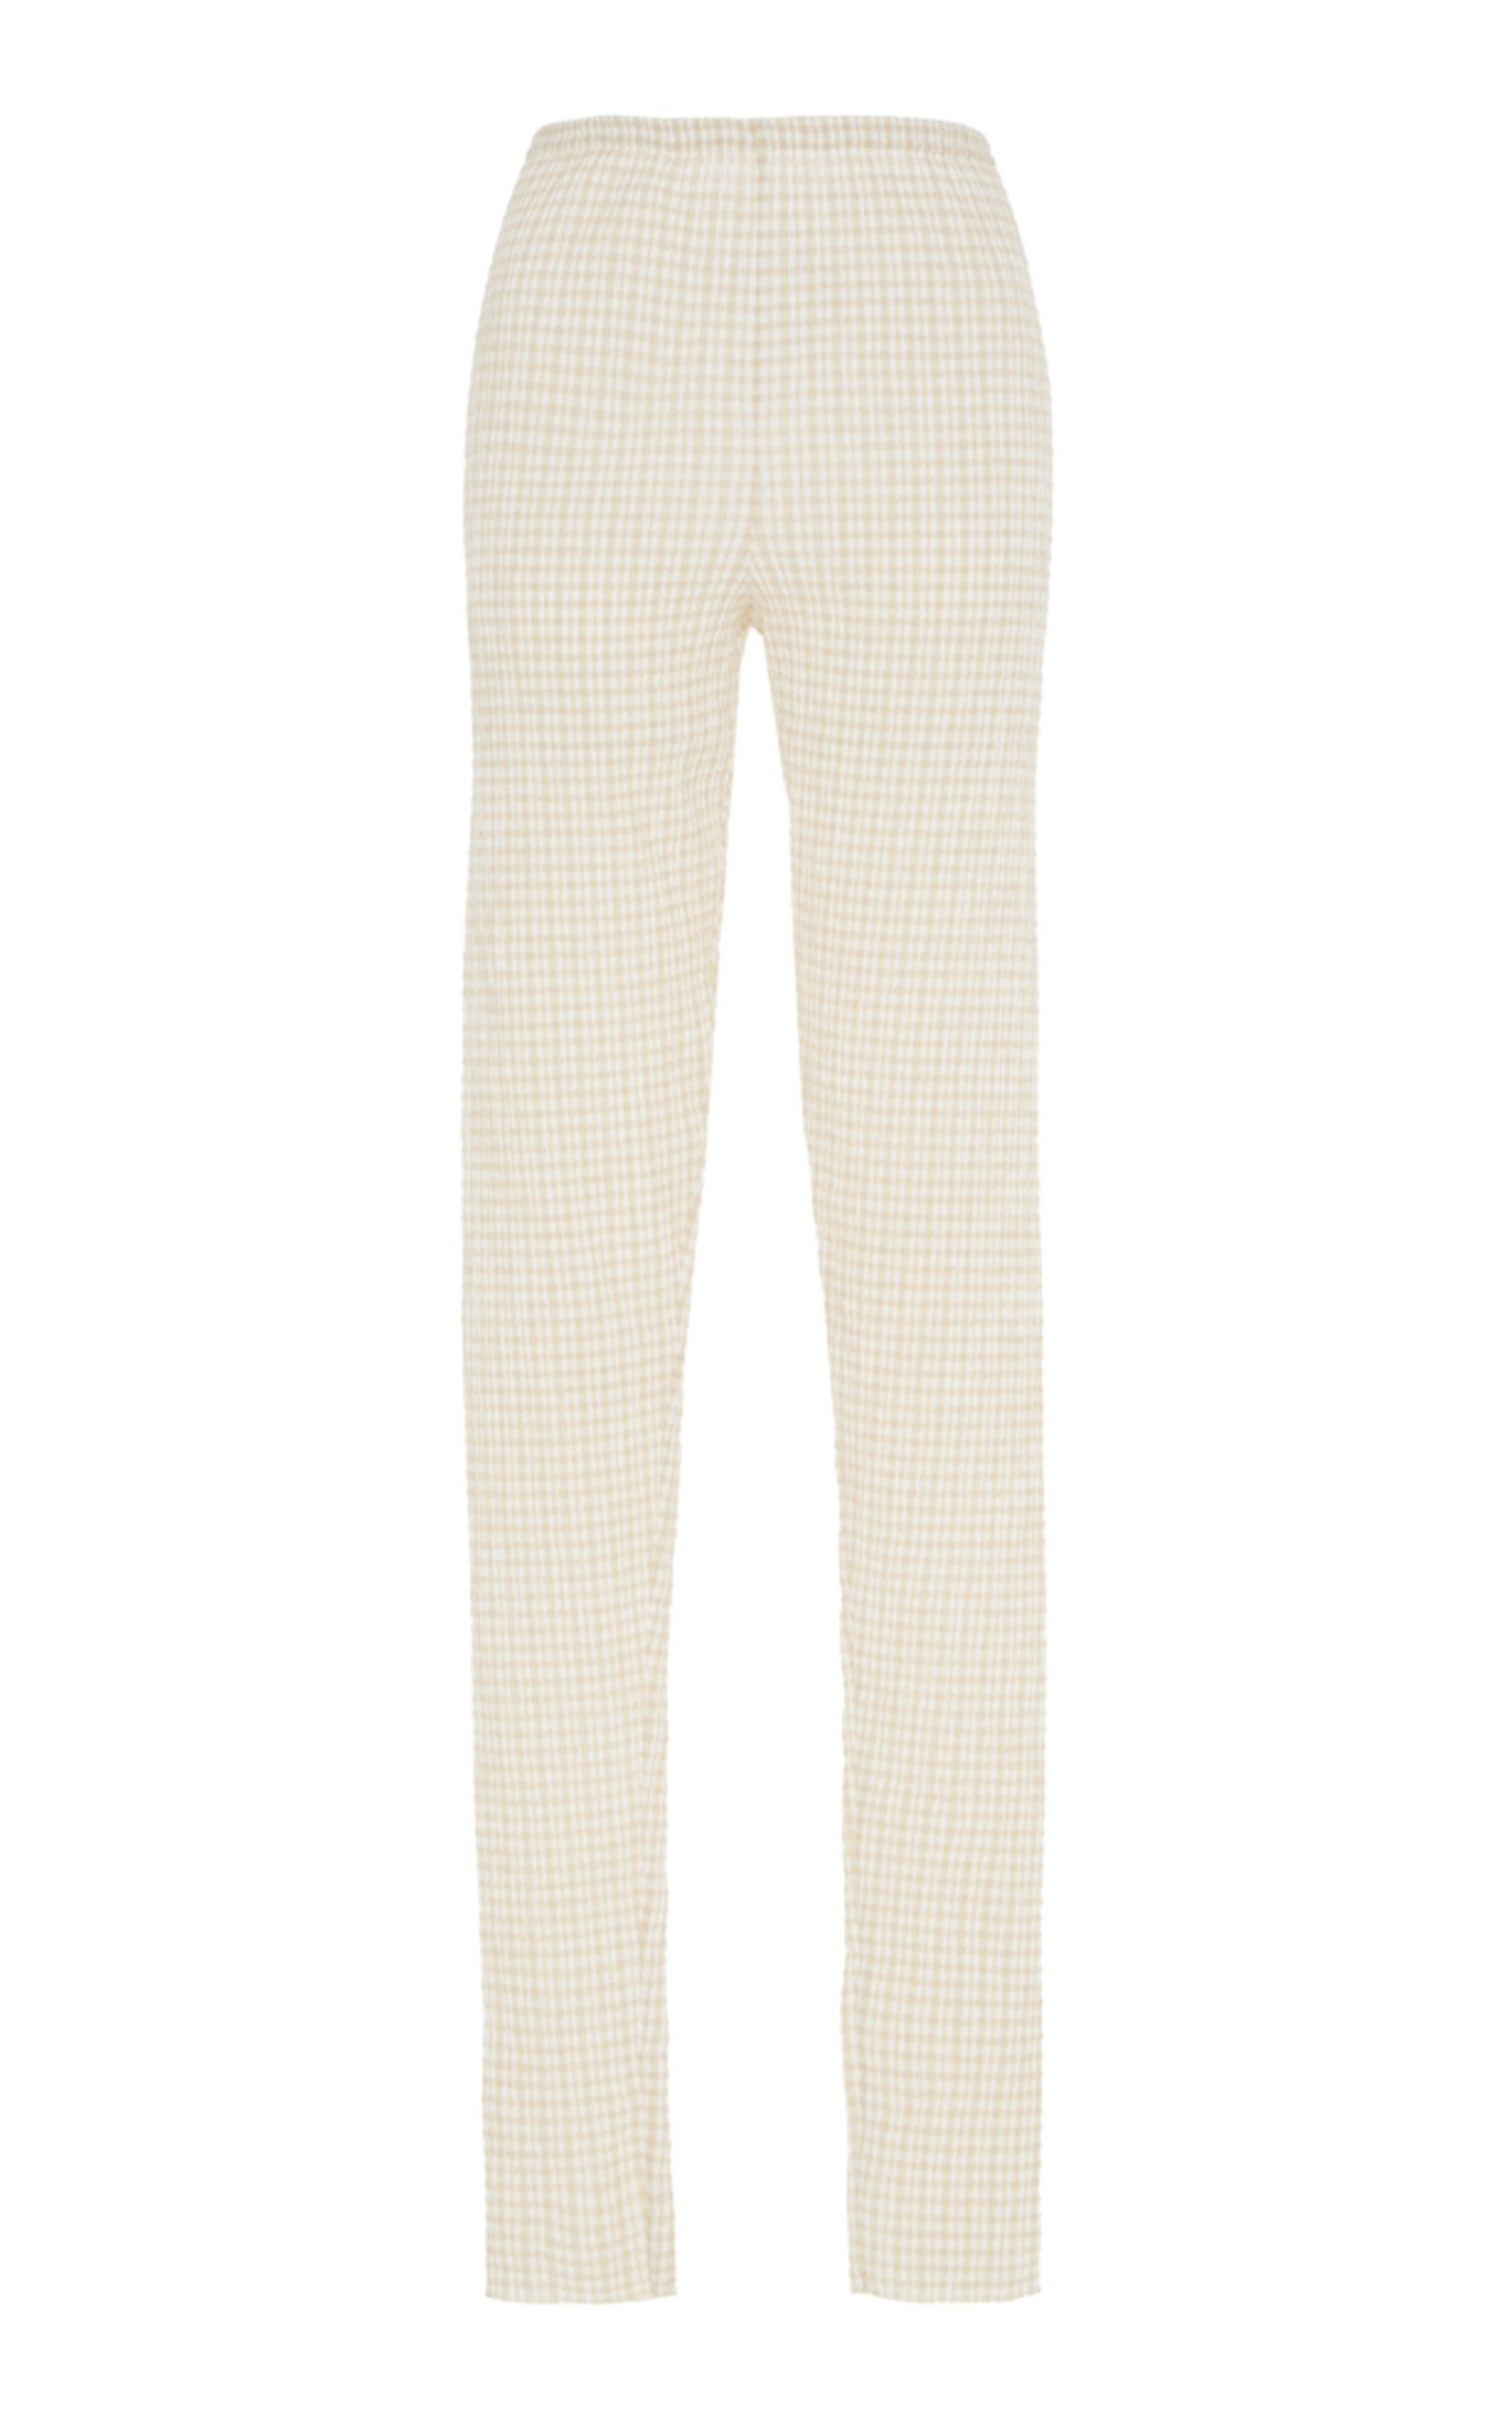 Deals Cheap Price Cotton Wool Check Legging Jil Sander Purchase Sale Online Best Place To Buy Clearance Deals 100% Guaranteed For Sale xvwd3q8J